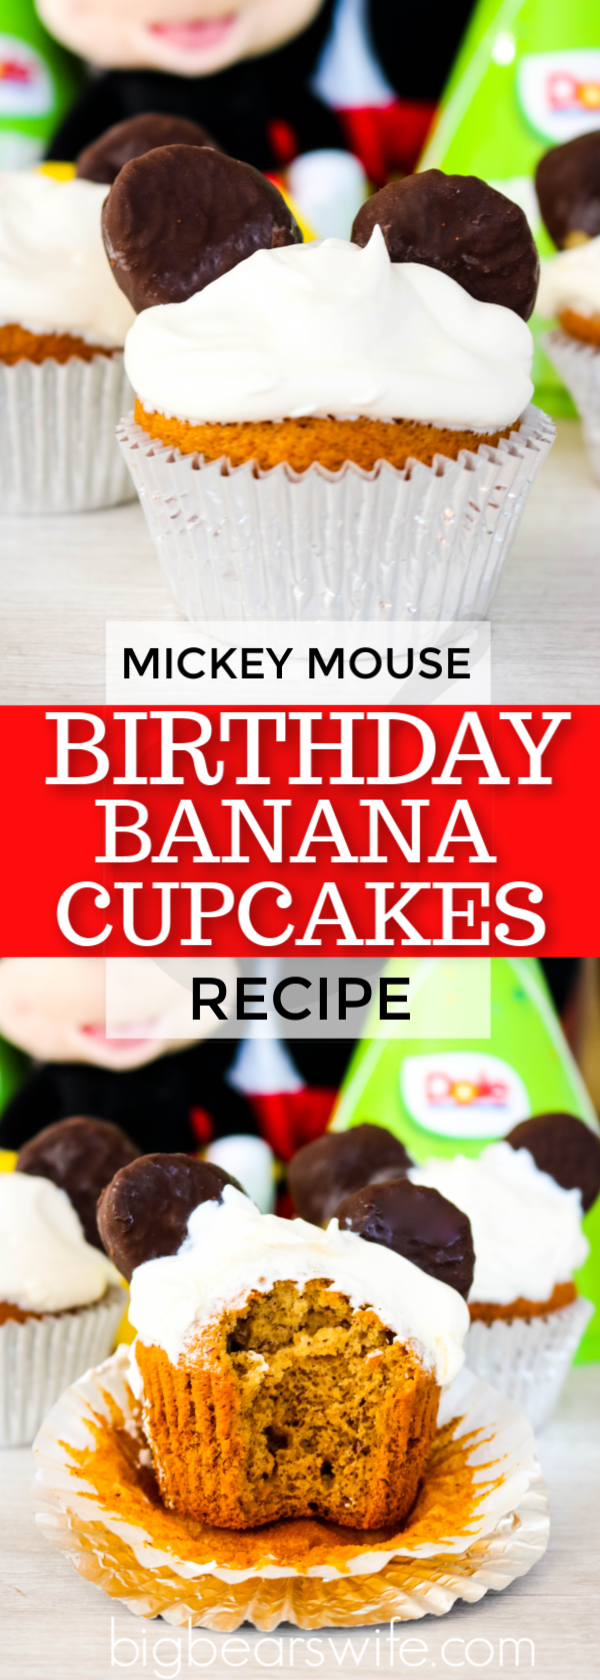 Mickey Mouse is turning 90 and it's time to celebrate his birthday with these Mickey Mouse Birthday Banana Cupcakes  #Mickey90 #MickeyTrueOriginal #Disney #Dole #DoleHero